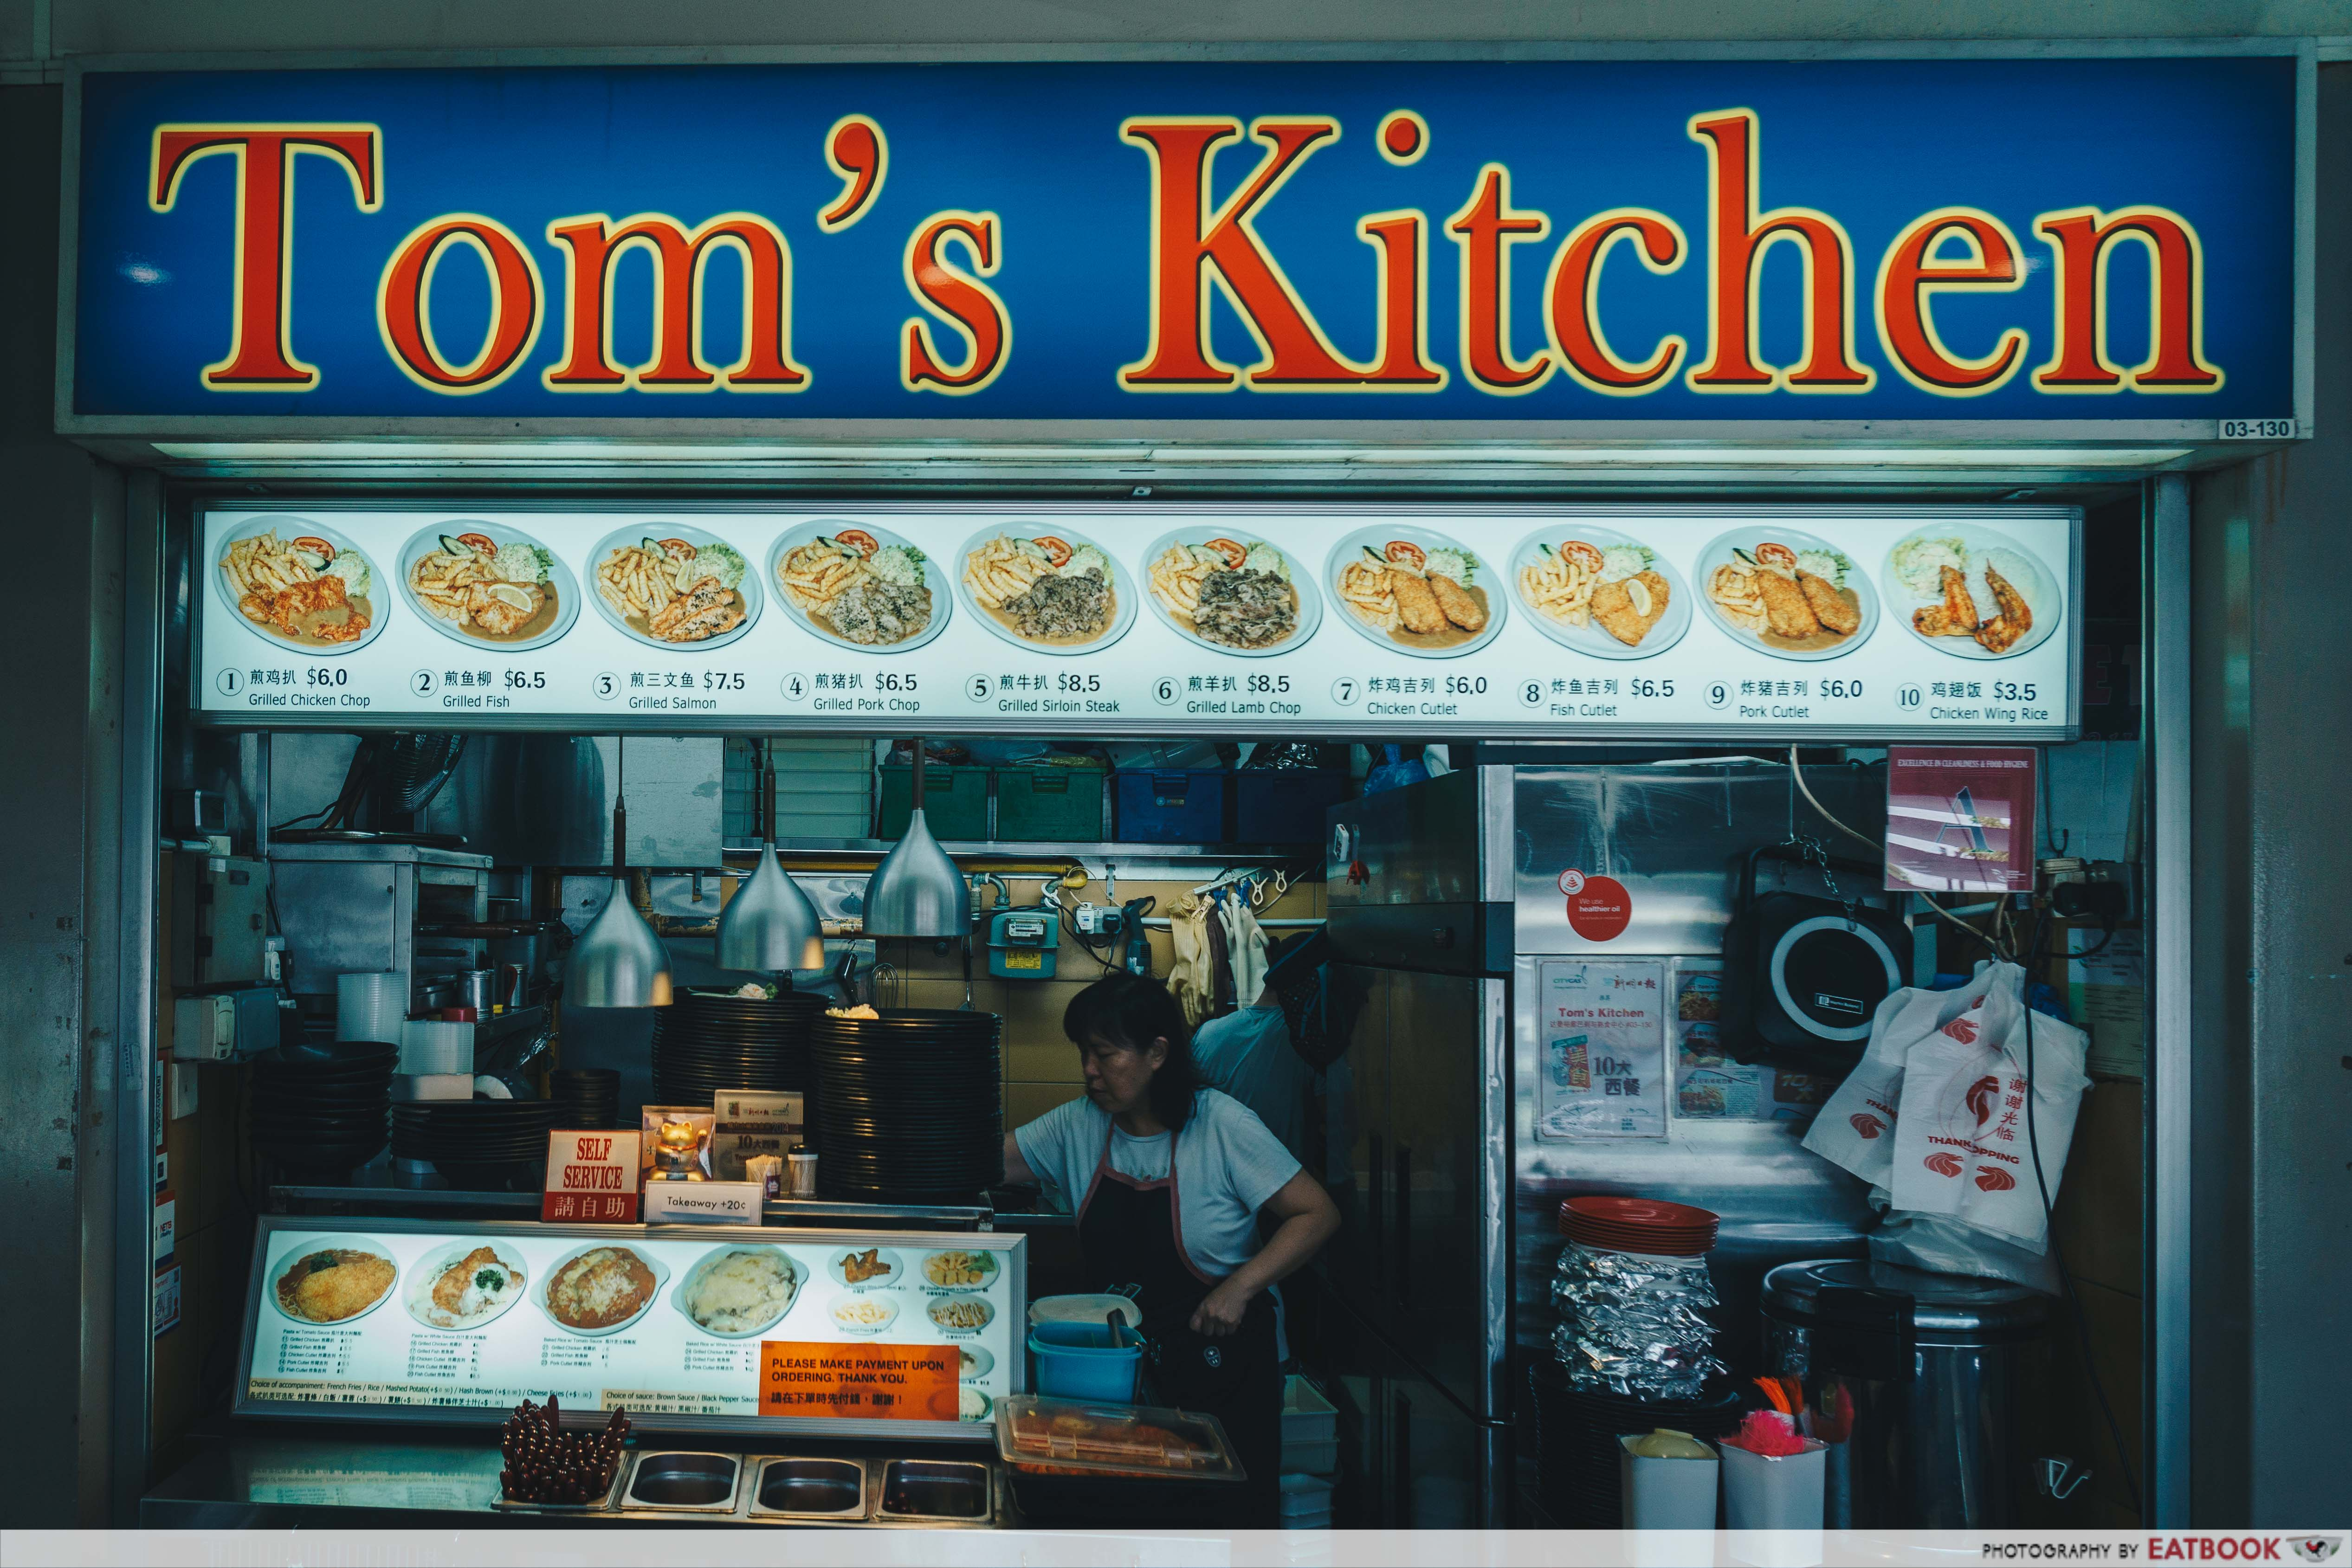 Tom's Kitchen - storefront